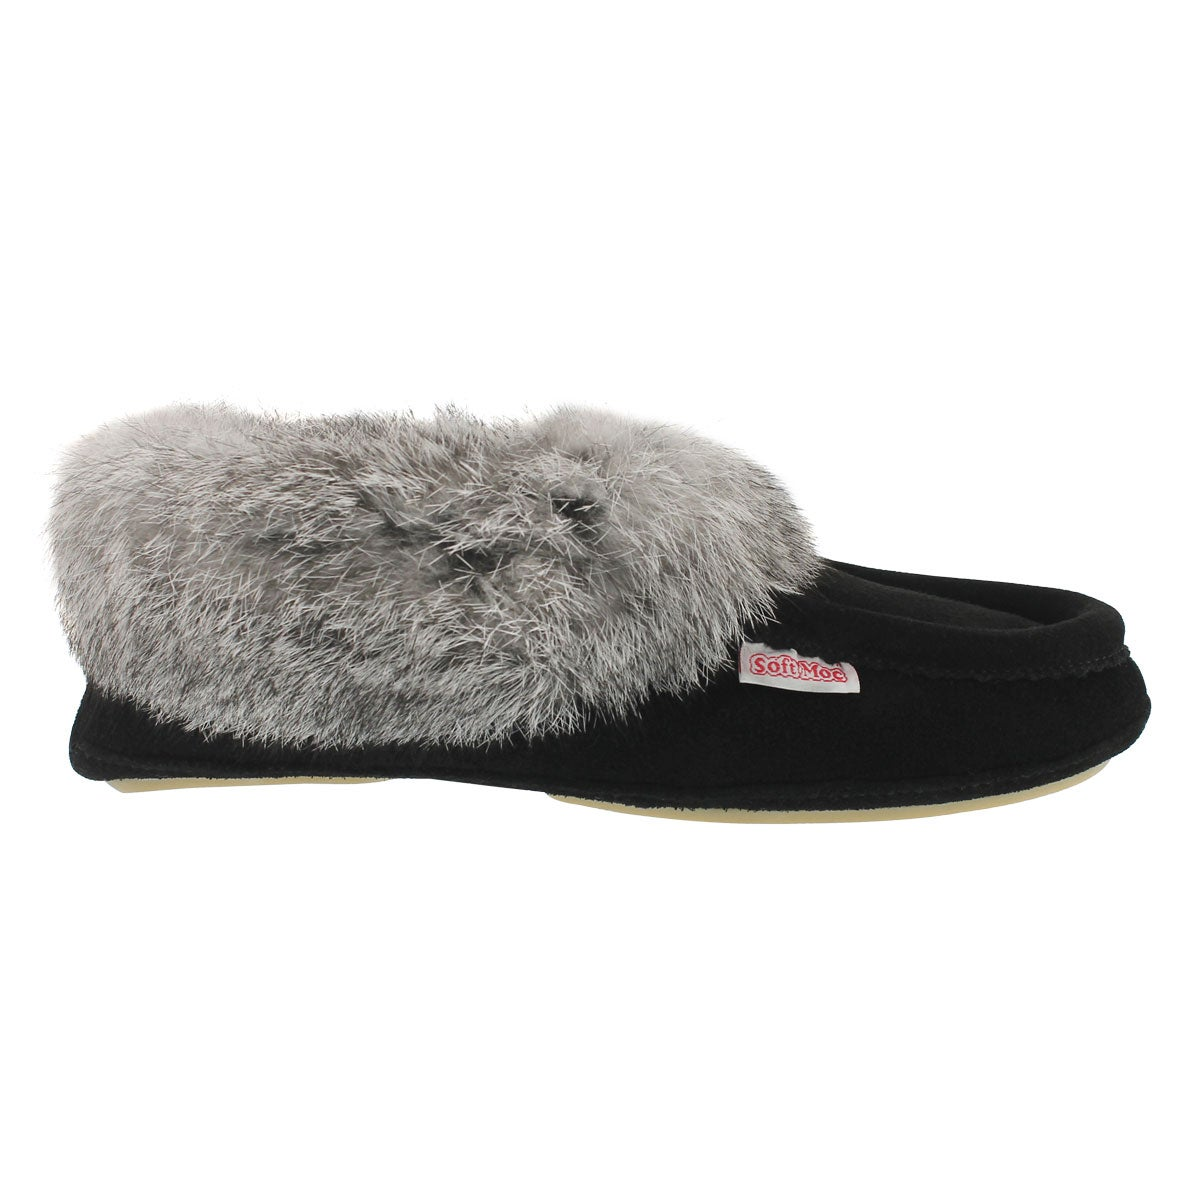 Lds Carrot2 blk sde rabbit fur moccasin